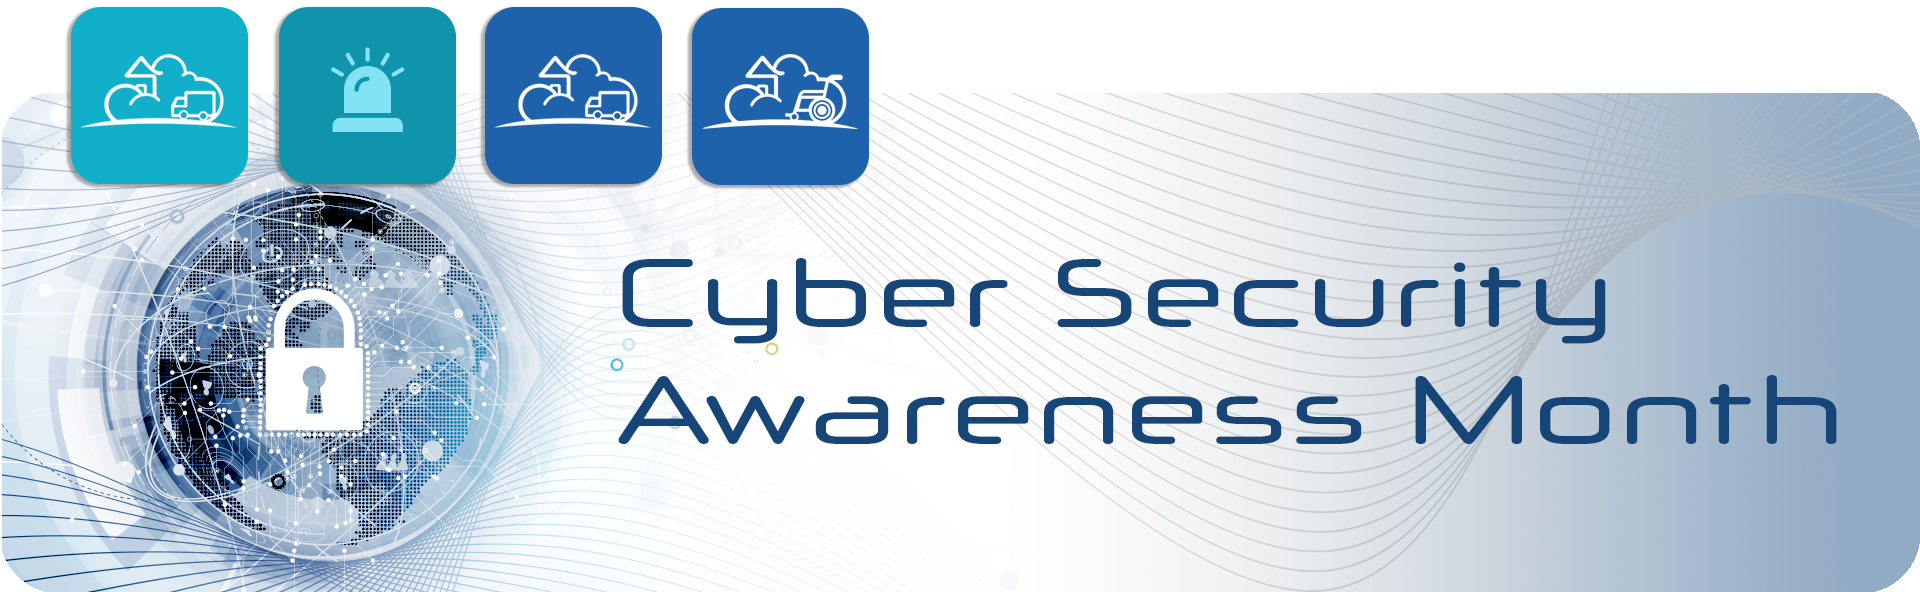 Cyber Security Awareness Month Banner